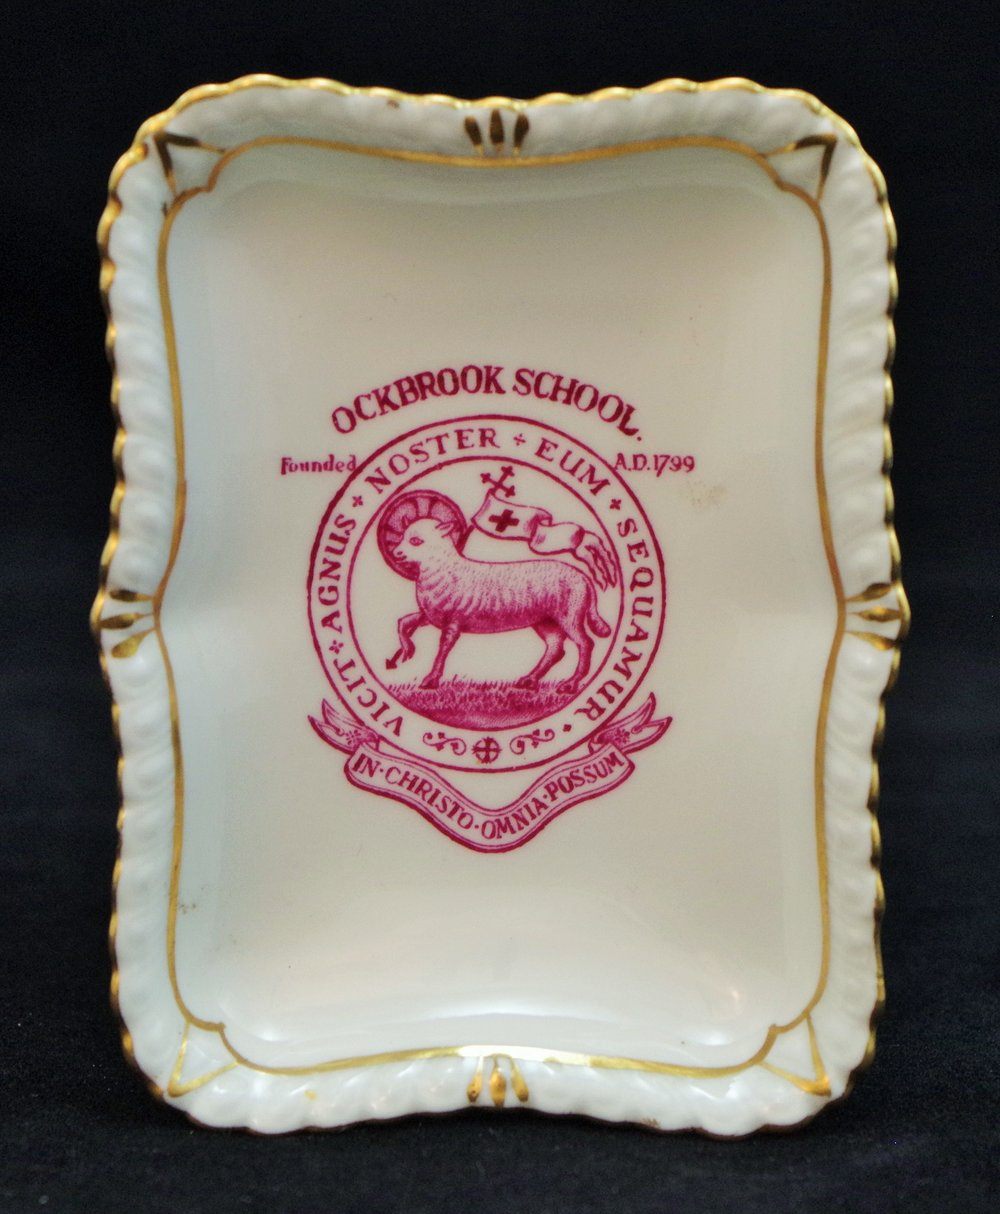 royal-crown-derby-gadroon-oblong-coronation-tray-ockbrook-school